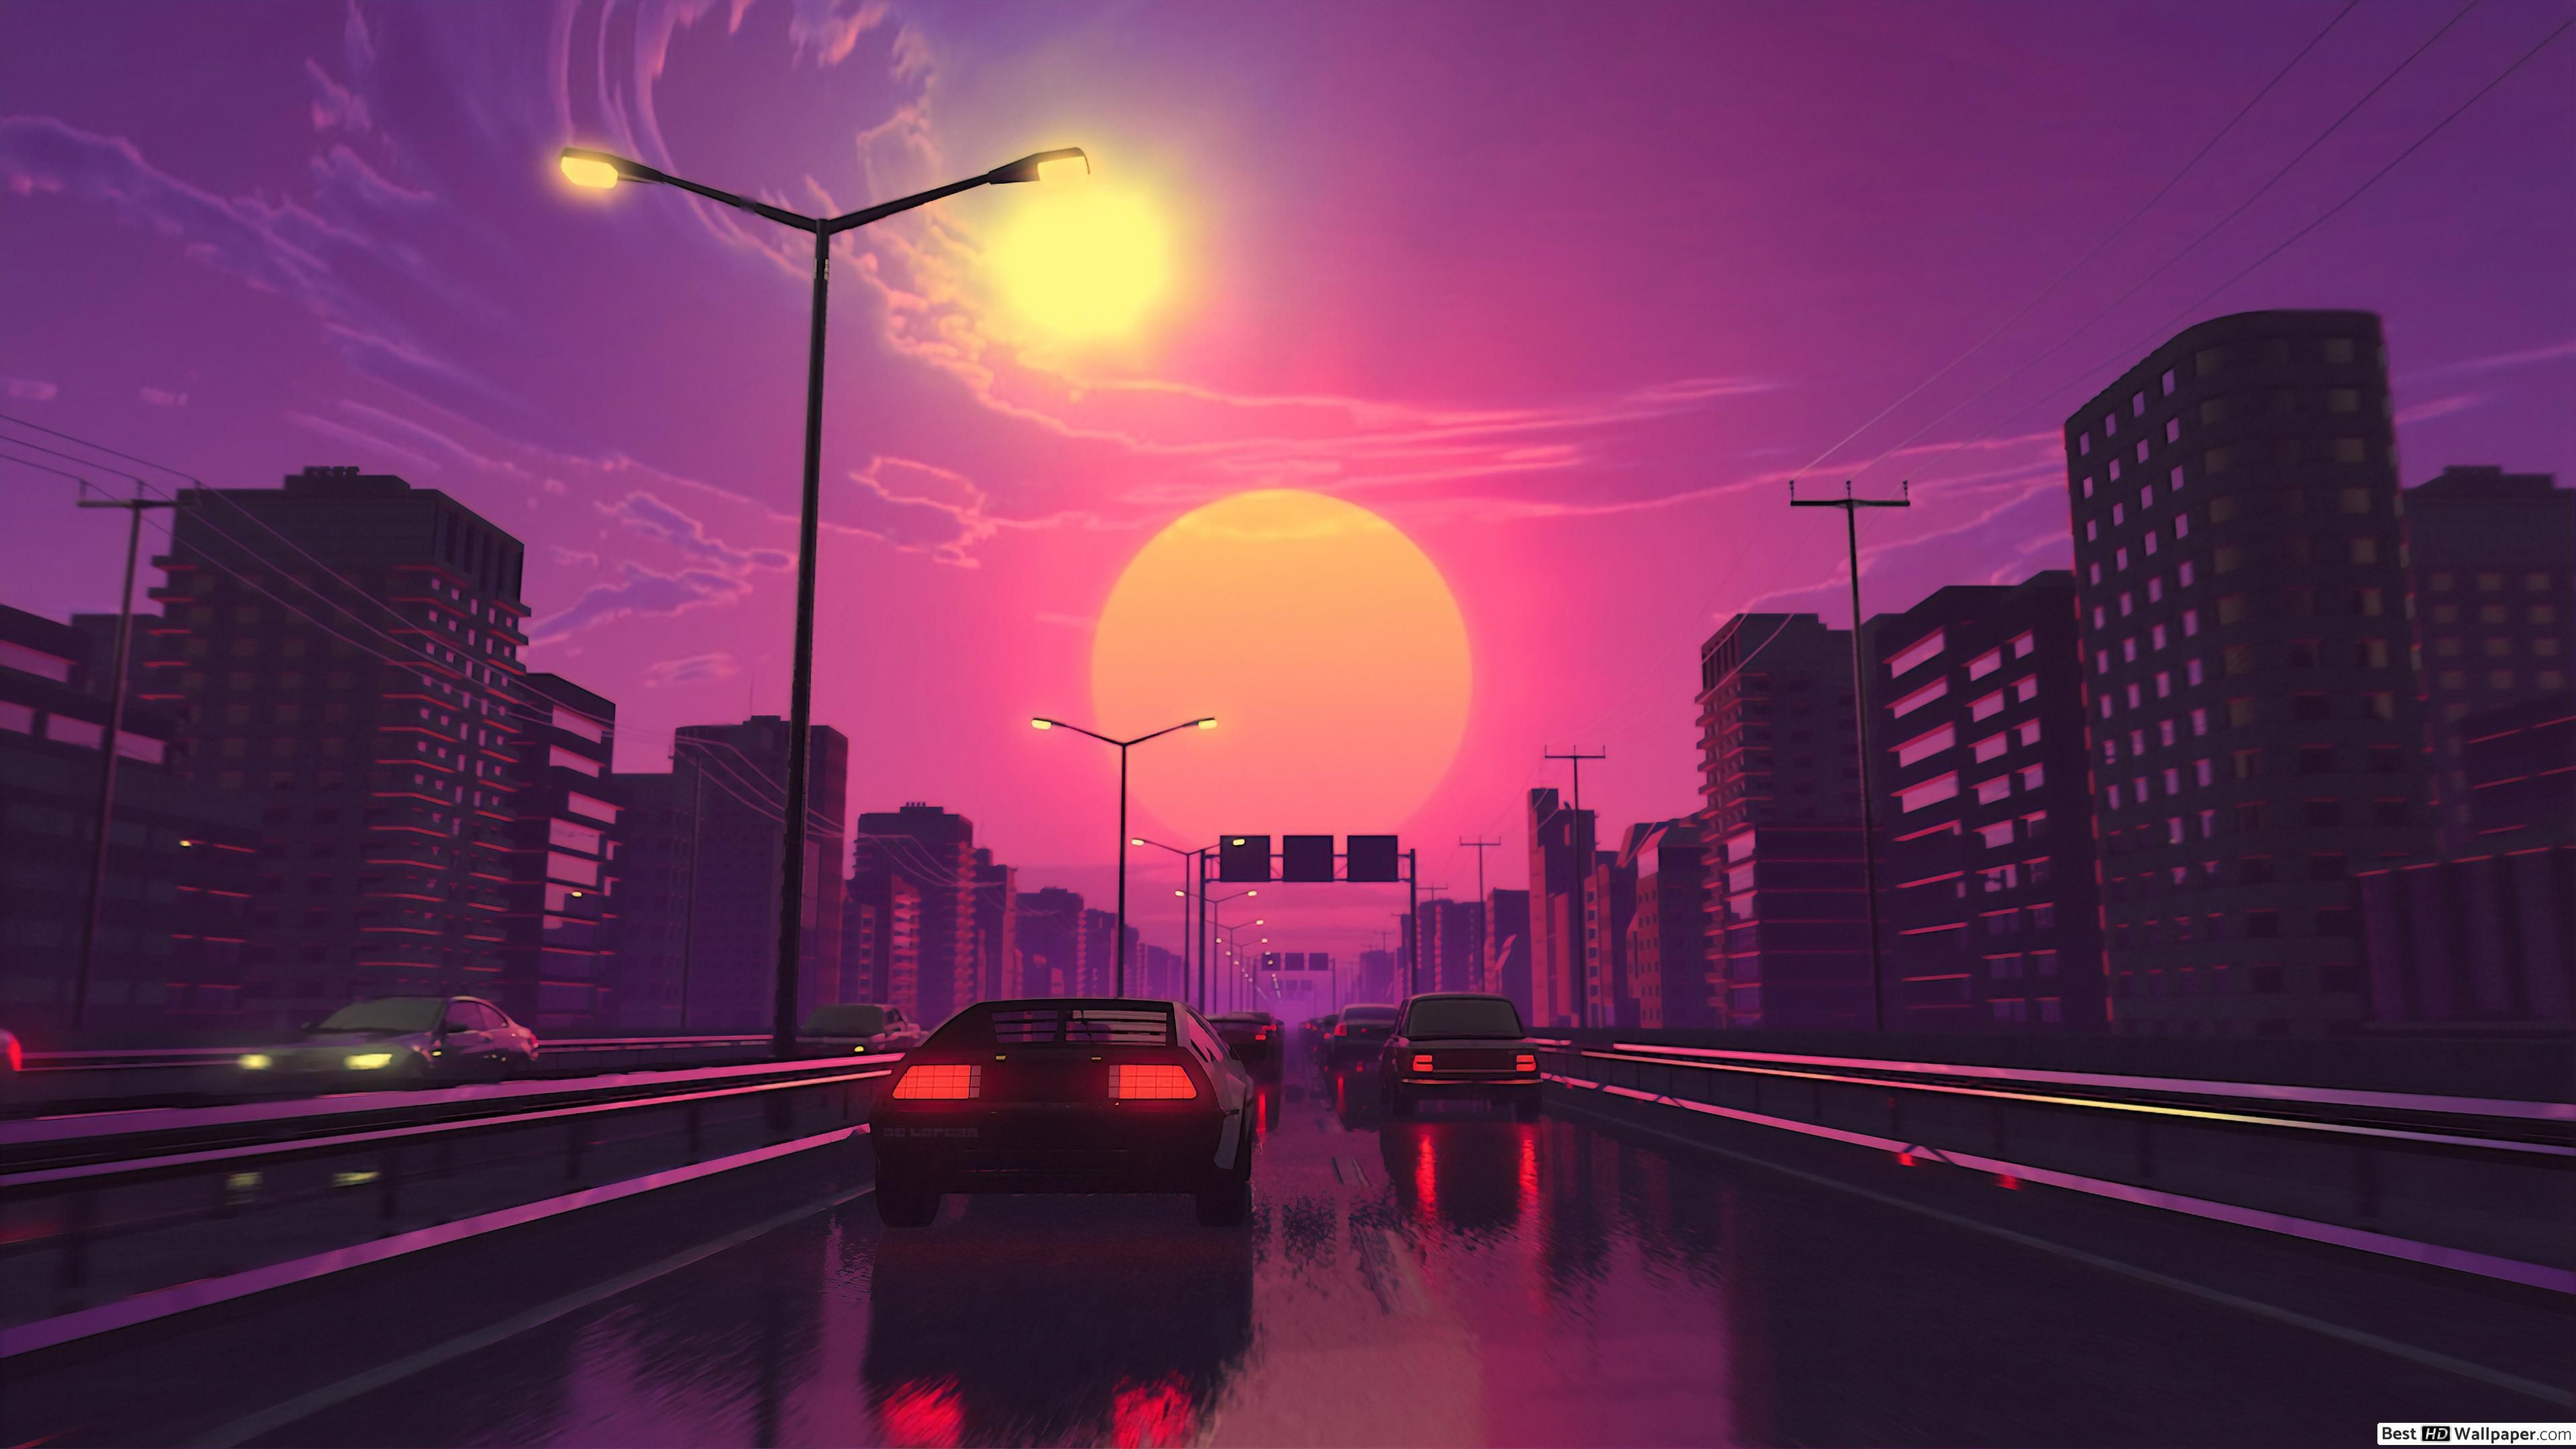 Retro City Wallpapers Top Free Retro City Backgrounds Wallpaperaccess